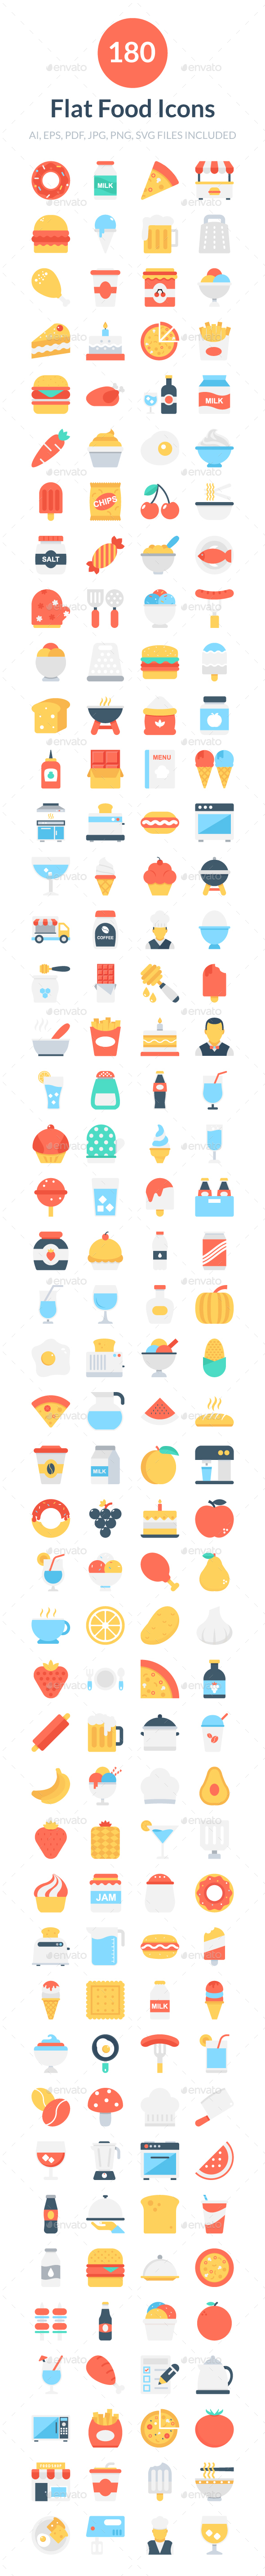 180 Flat Food Icons - Icons